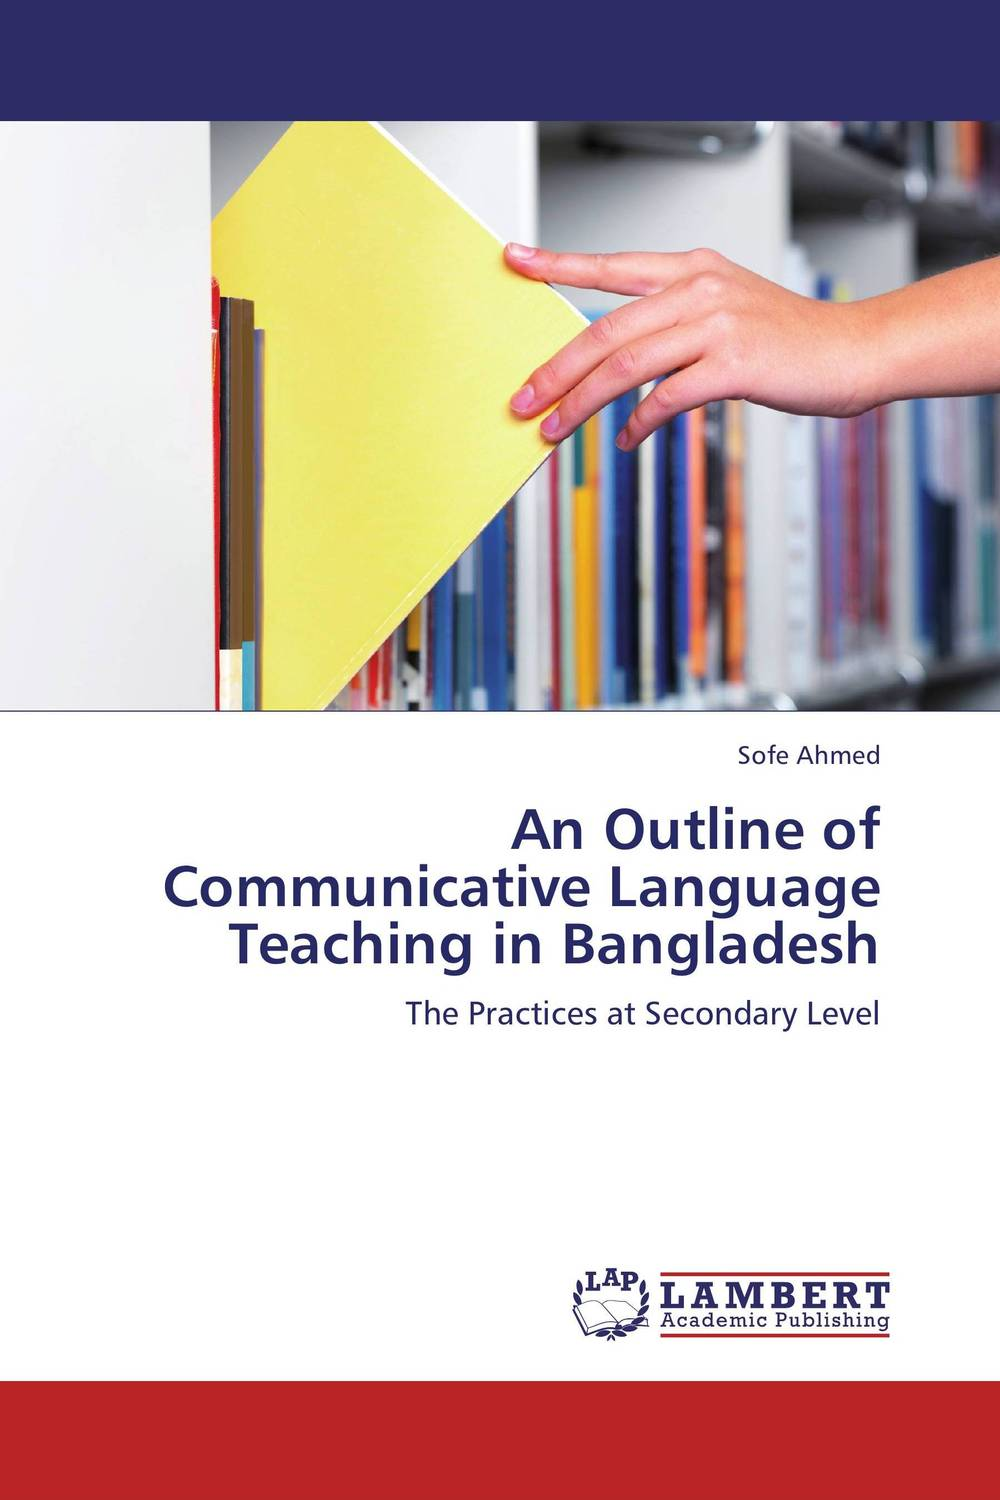 An Outline of Communicative Language Teaching in Bangladesh an outline of communicative language teaching in bangladesh